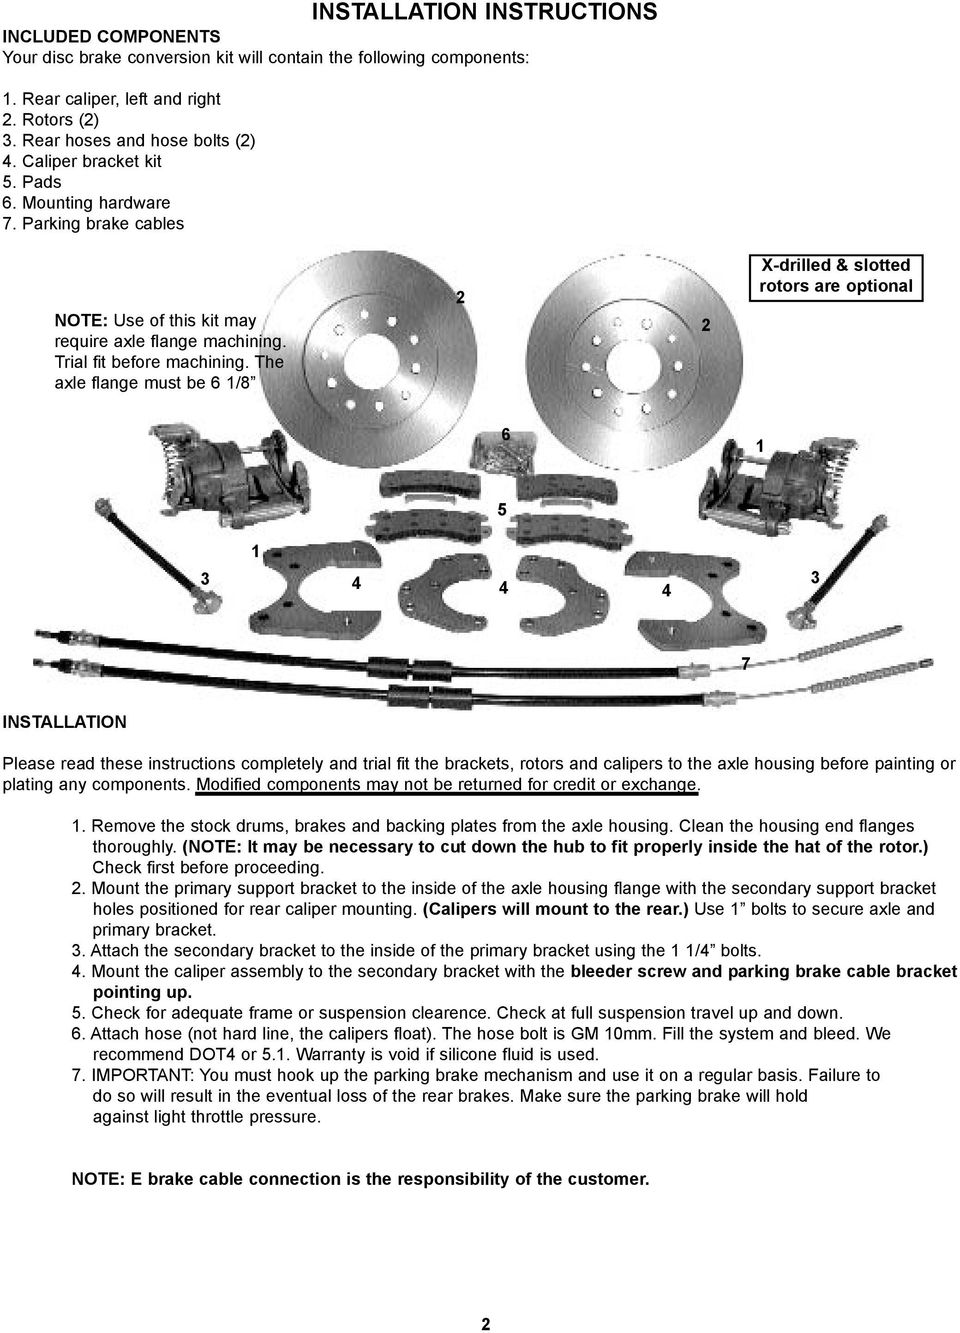 INSTALLATION INSTRUCTIONS THIS KIT WILL ONLY WORK WITH C